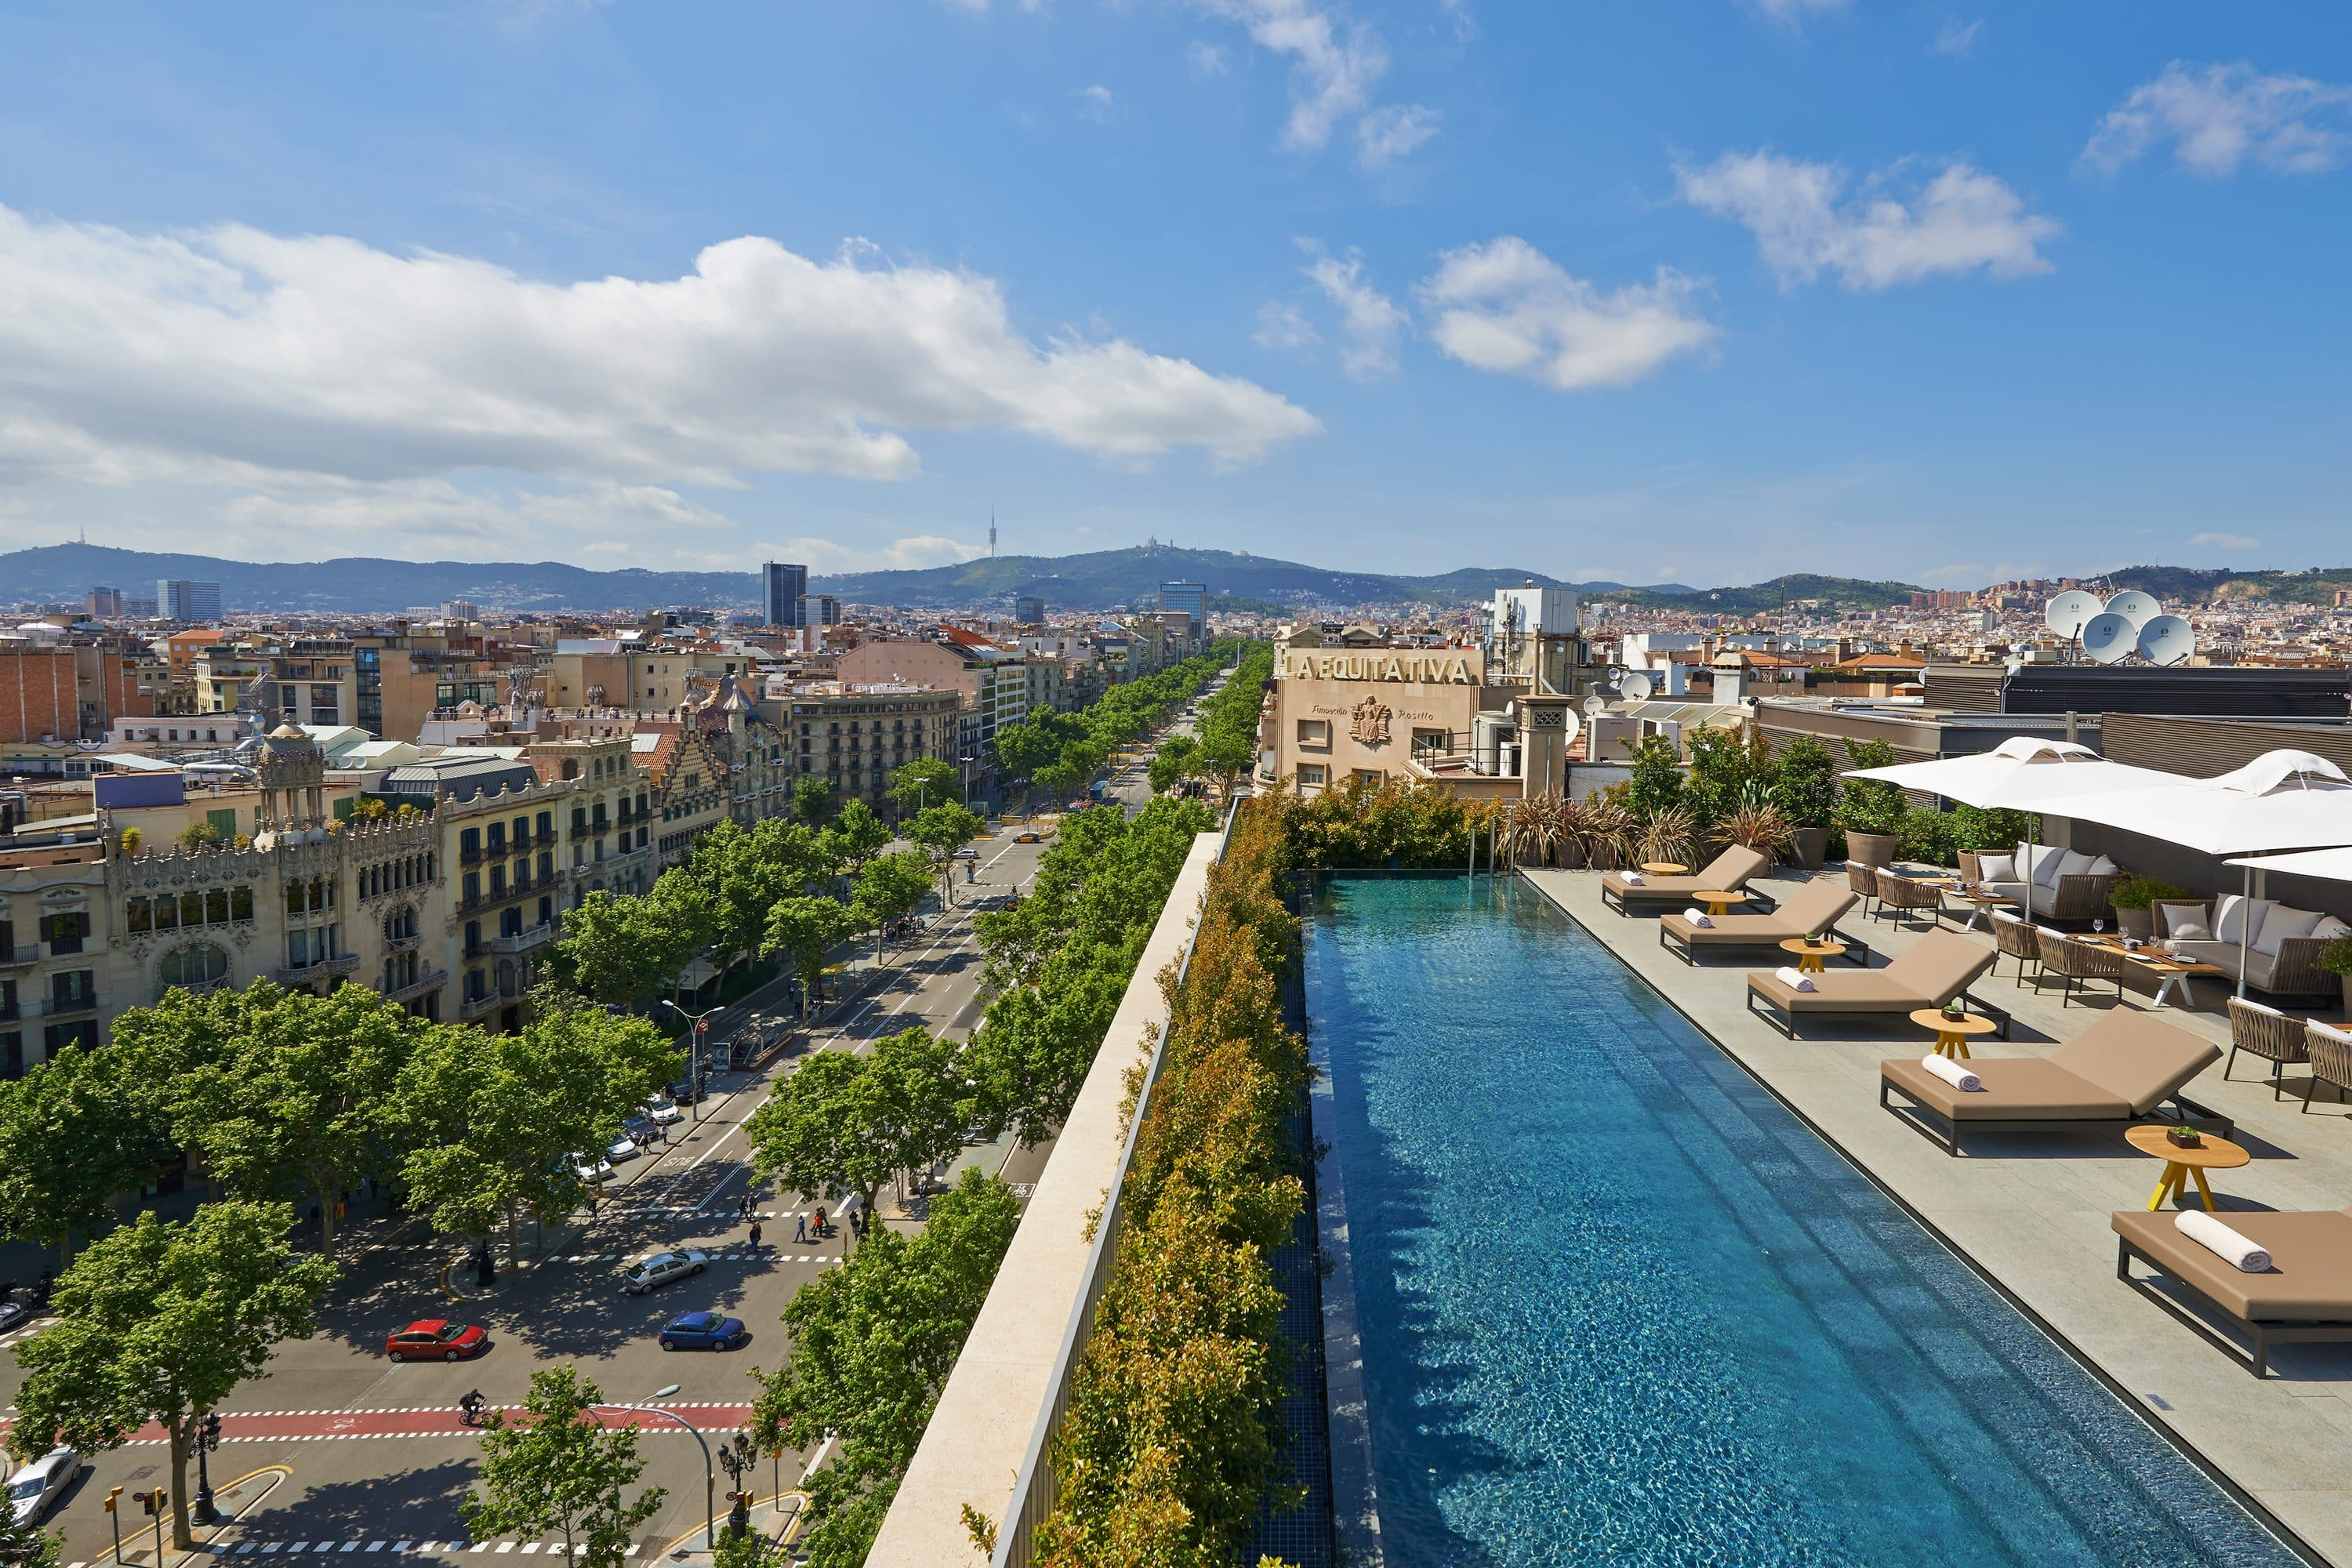 Rooftop pool and views of Barcelona